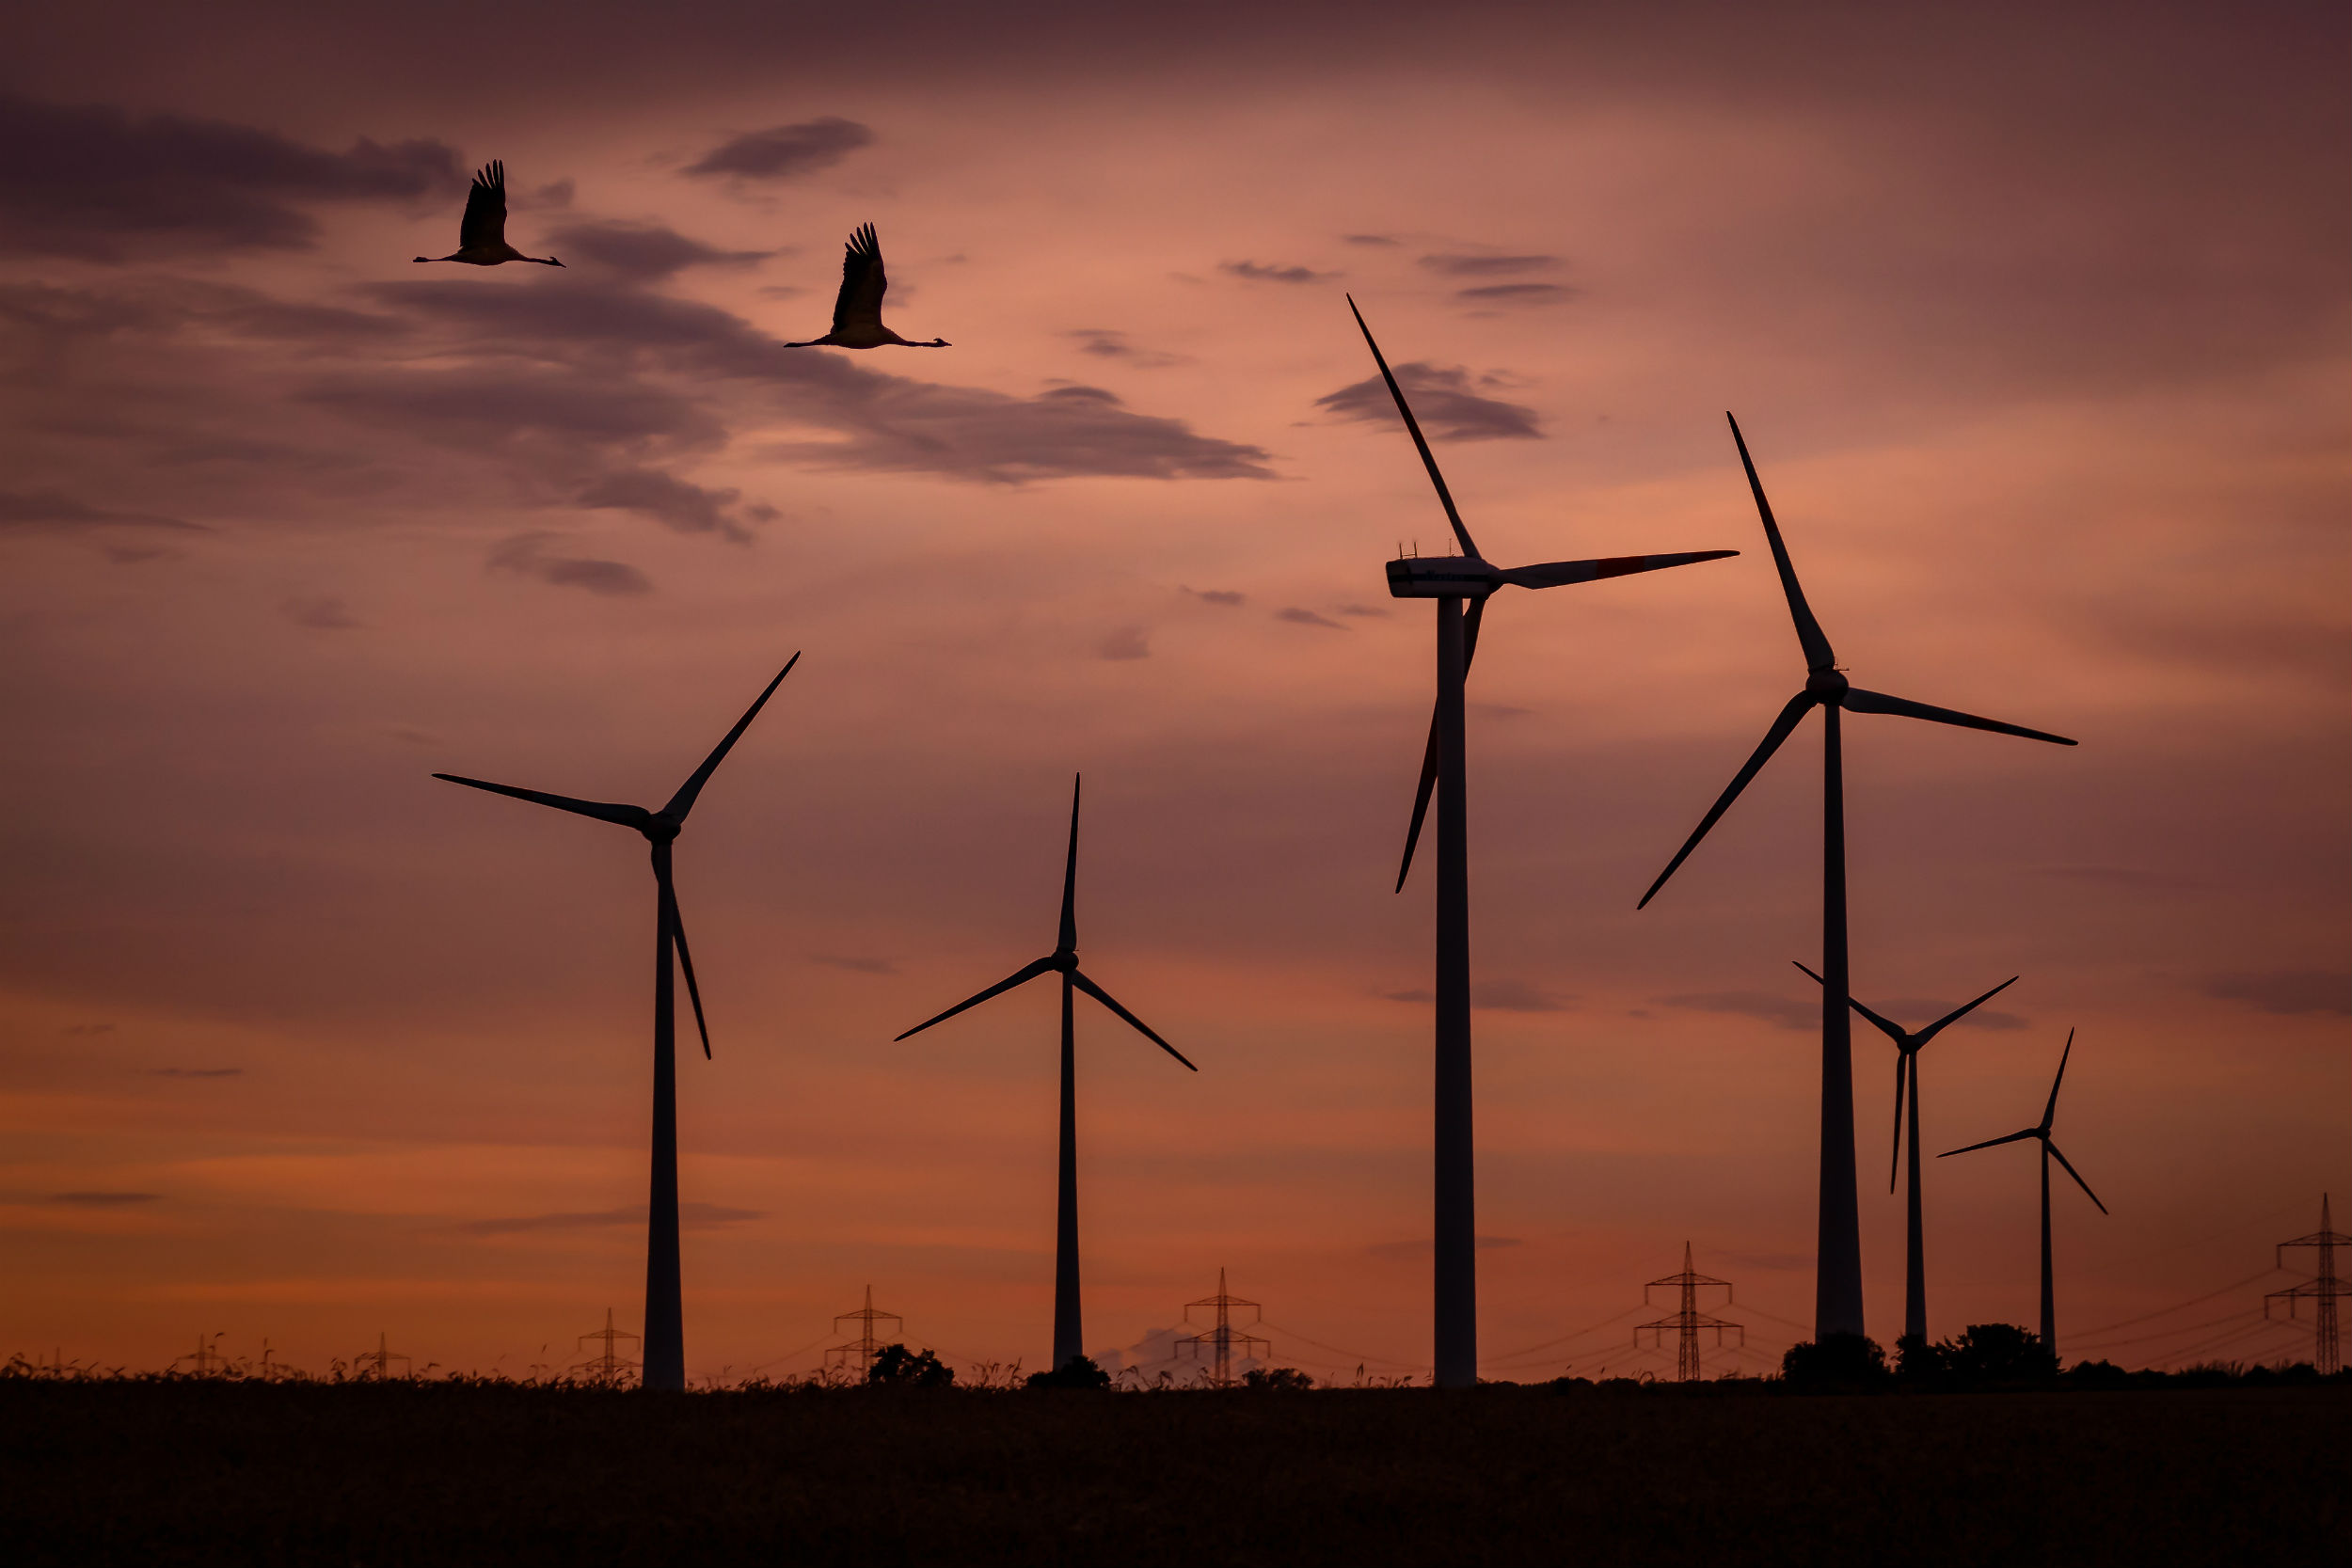 New technology can save birds from turbine blades